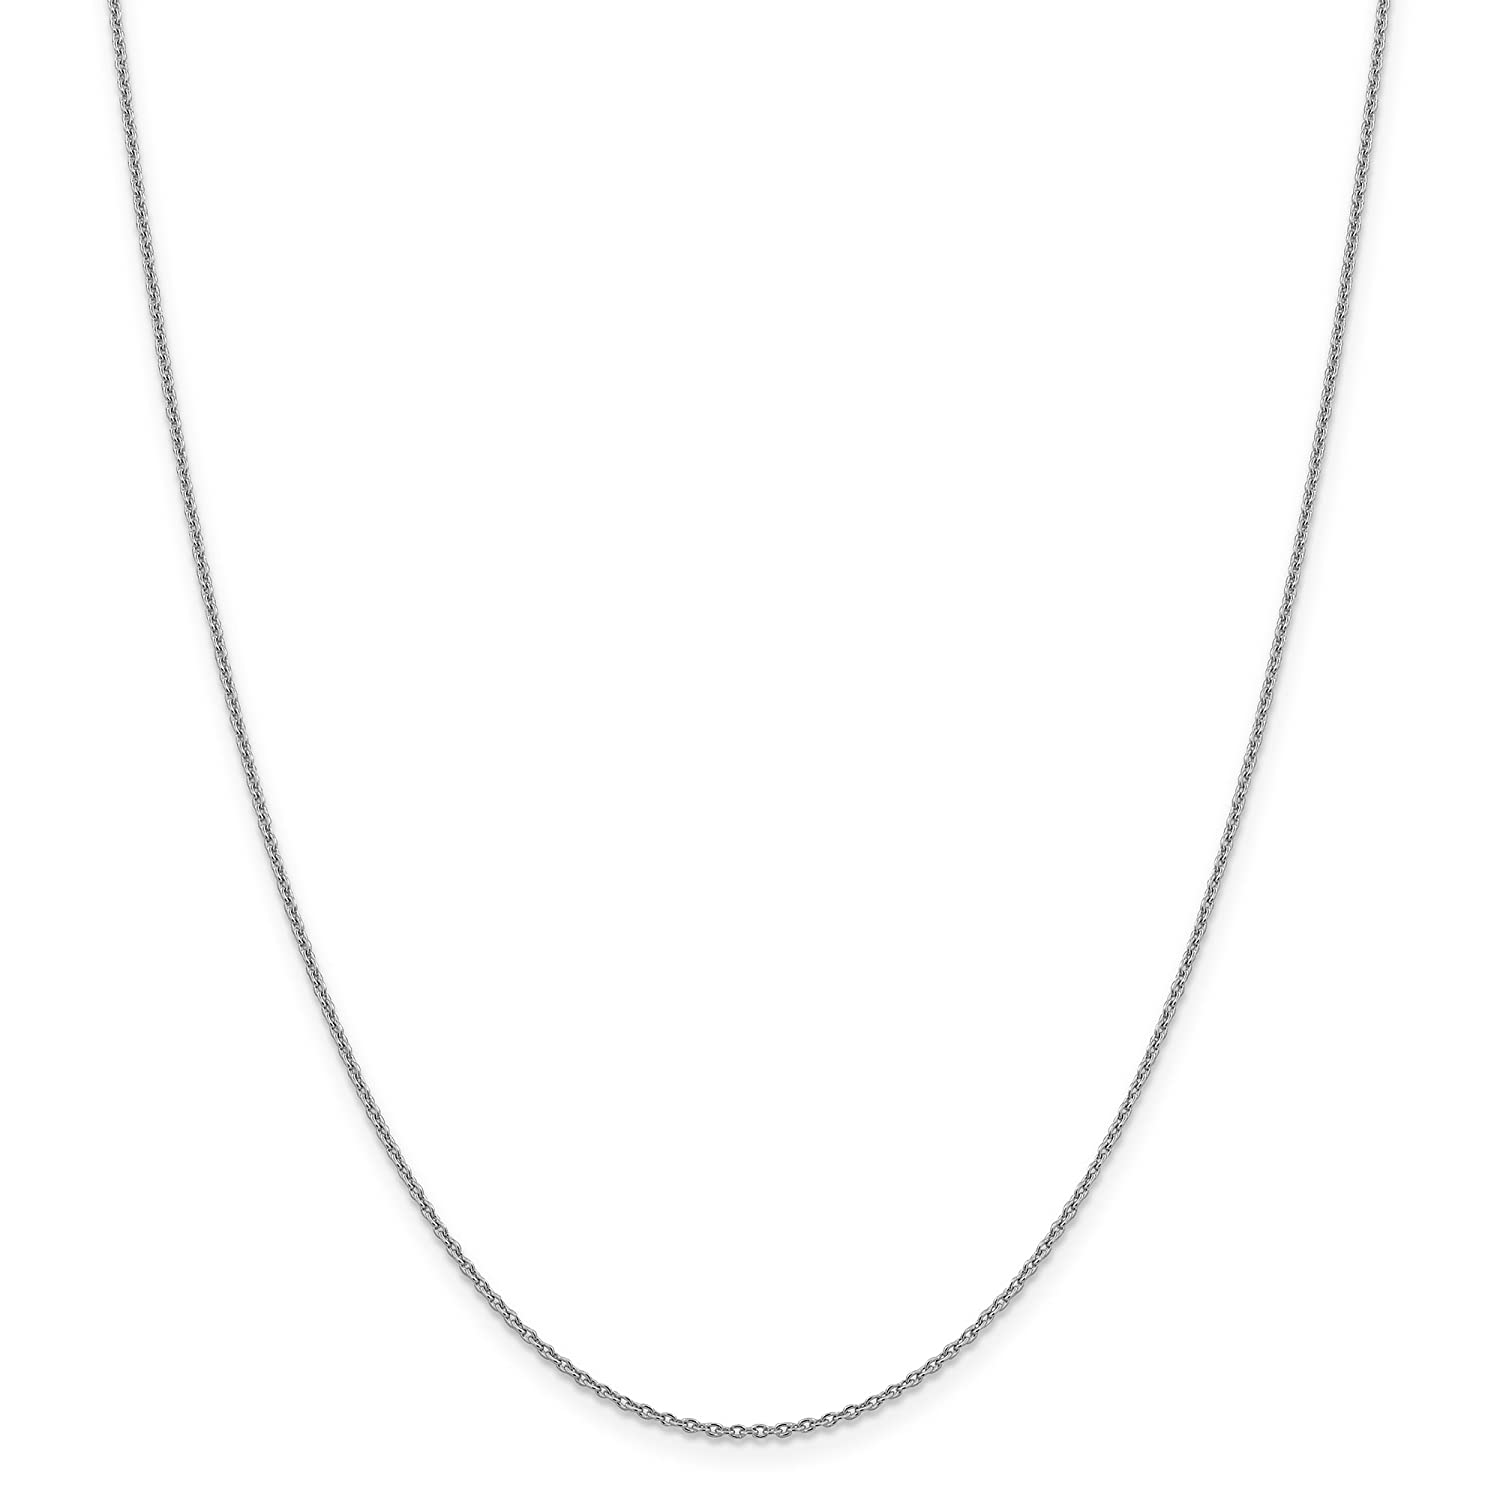 14k White Gold 1.4mm Lobster Cable Chain Necklace